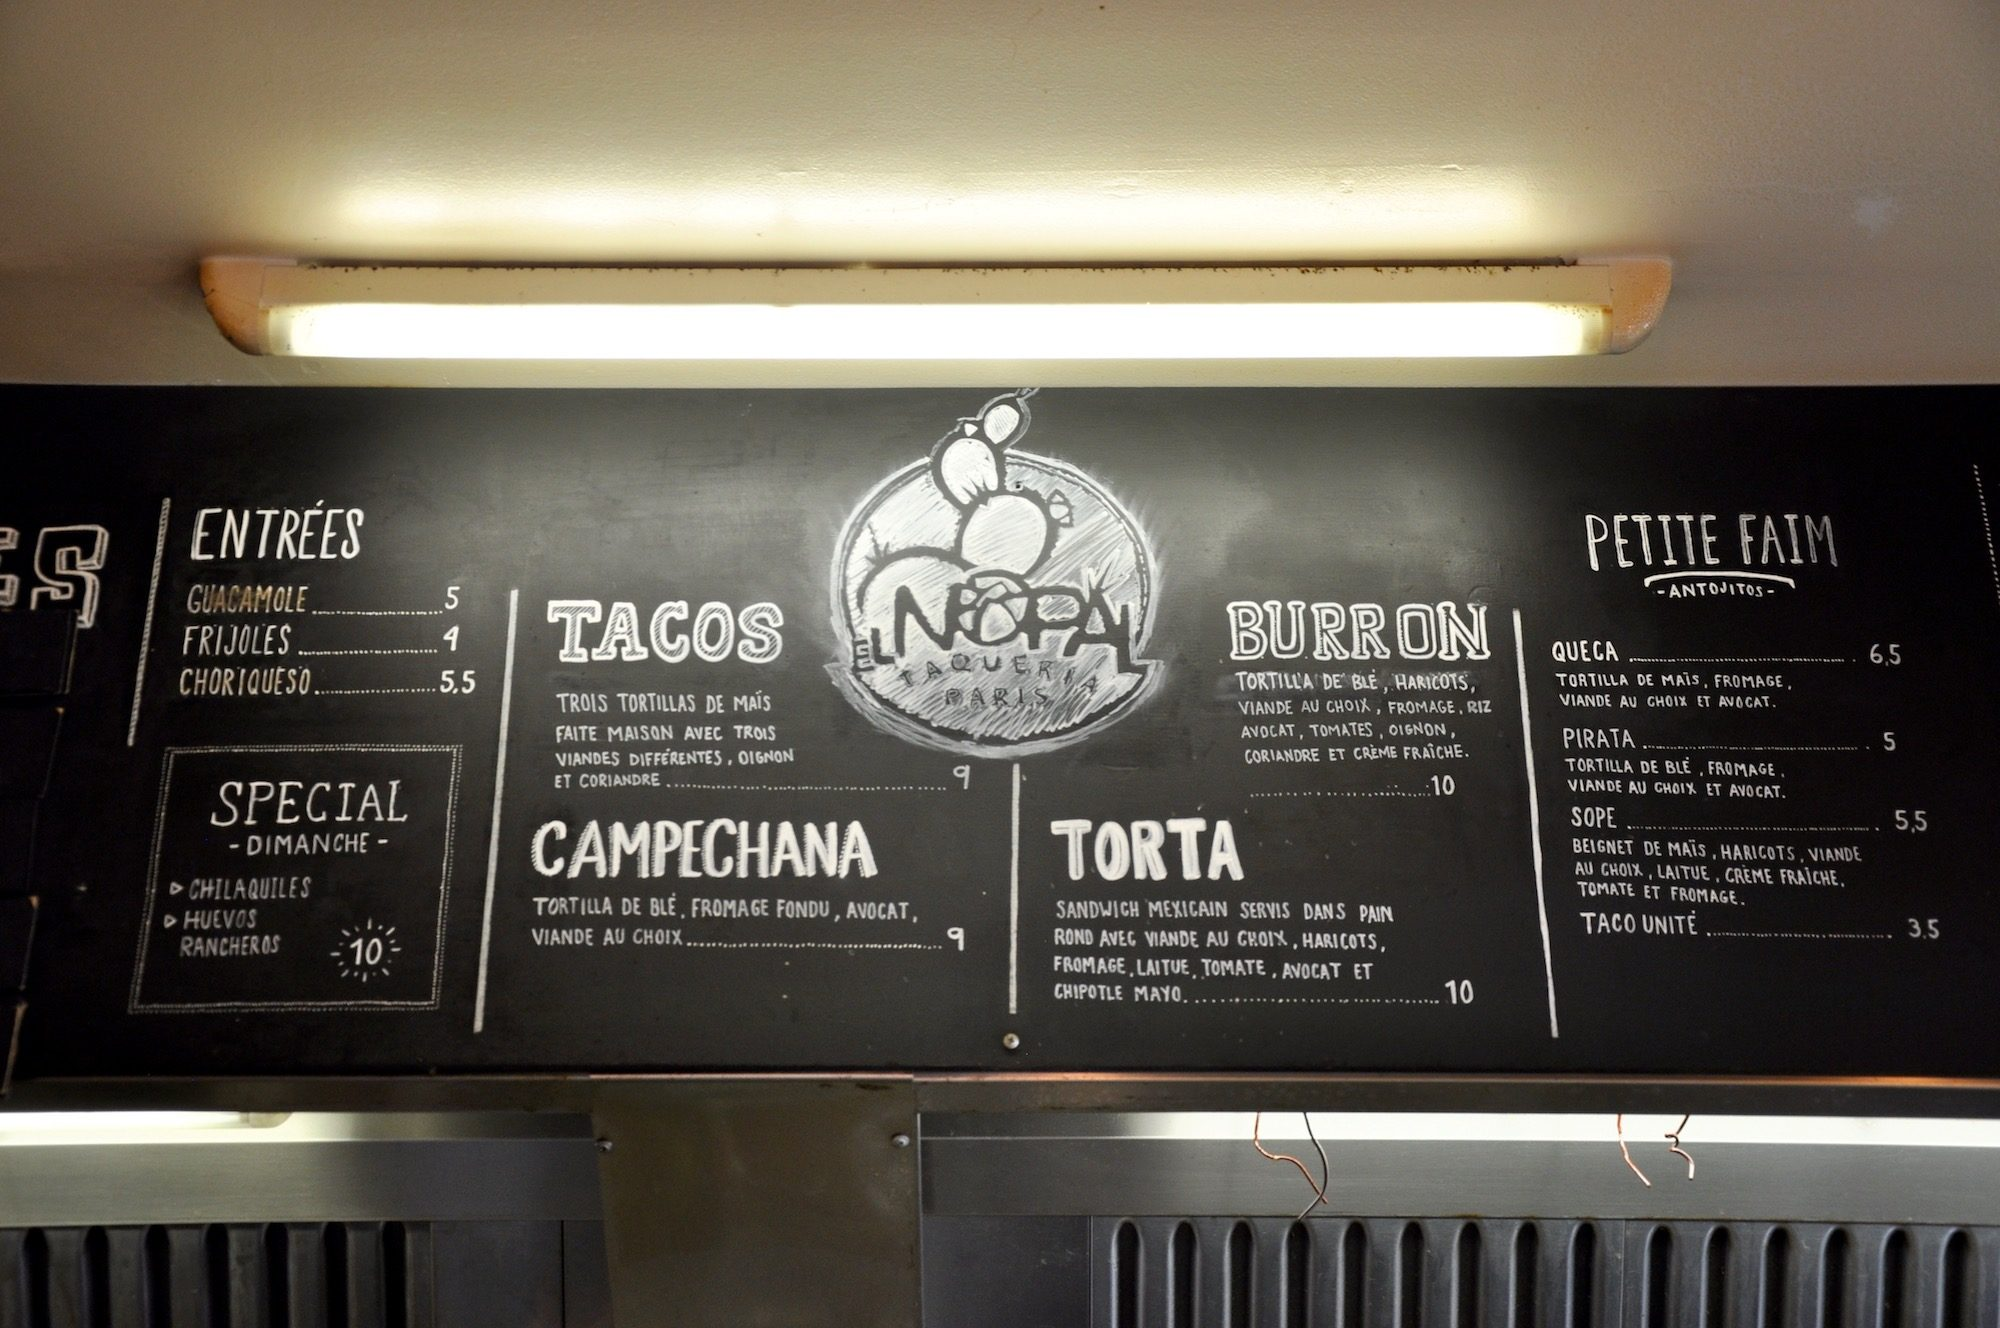 El Nopal, with its chalkboard menu, pictured, is the best taqueria in Paris and everything here is homemade.